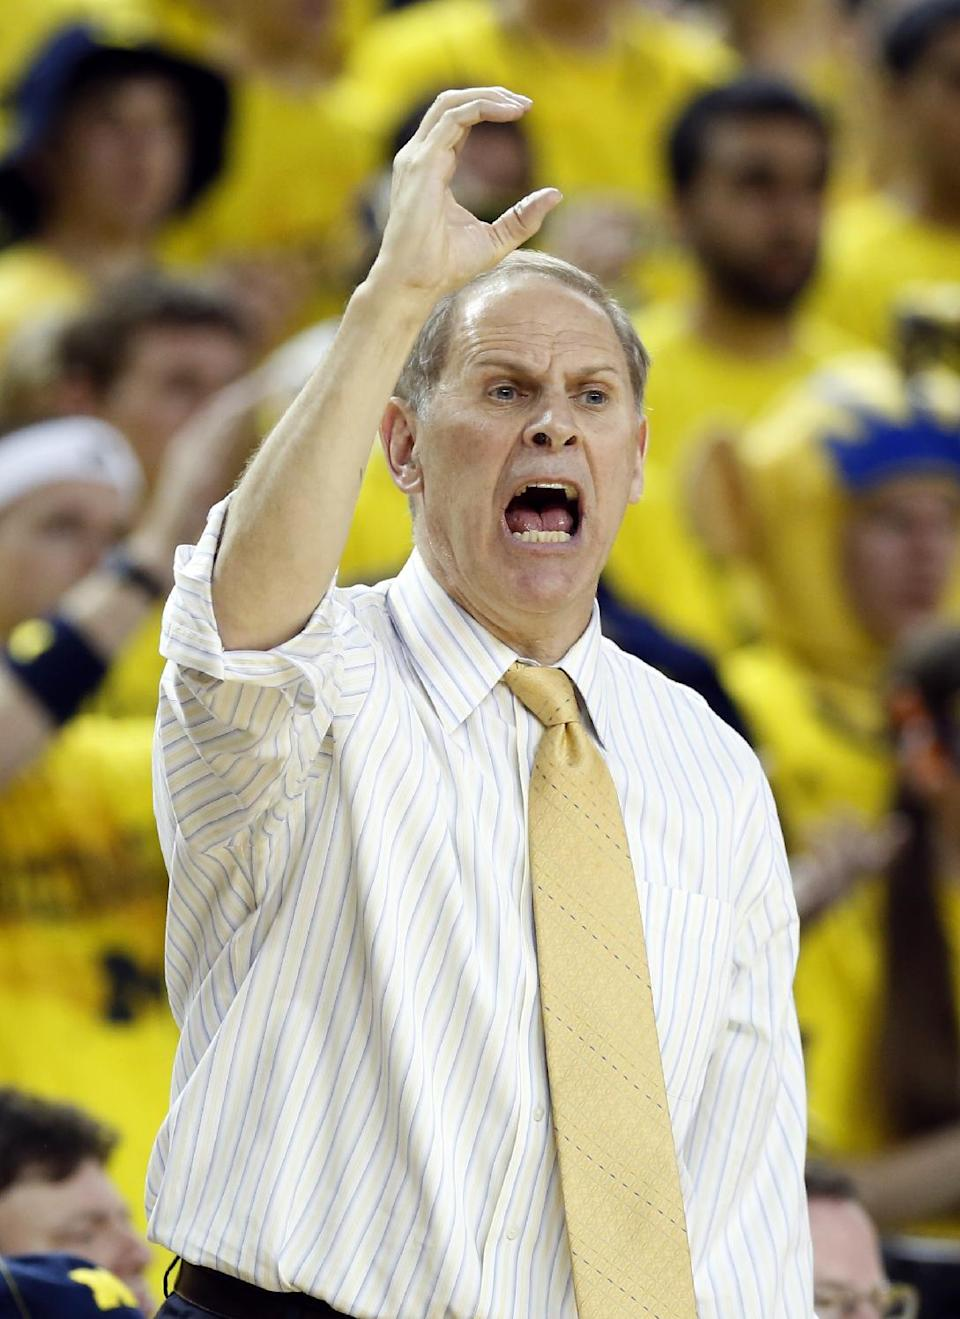 Michigan coach John Beilein shouts instructions from the bench during the second half of an NCAA college basketball game against Indiana Sunday, March 10, 2013, in Ann Arbor, Mich. Indiana defeated Michigan 72-71. (AP Photo/Duane Burleson)